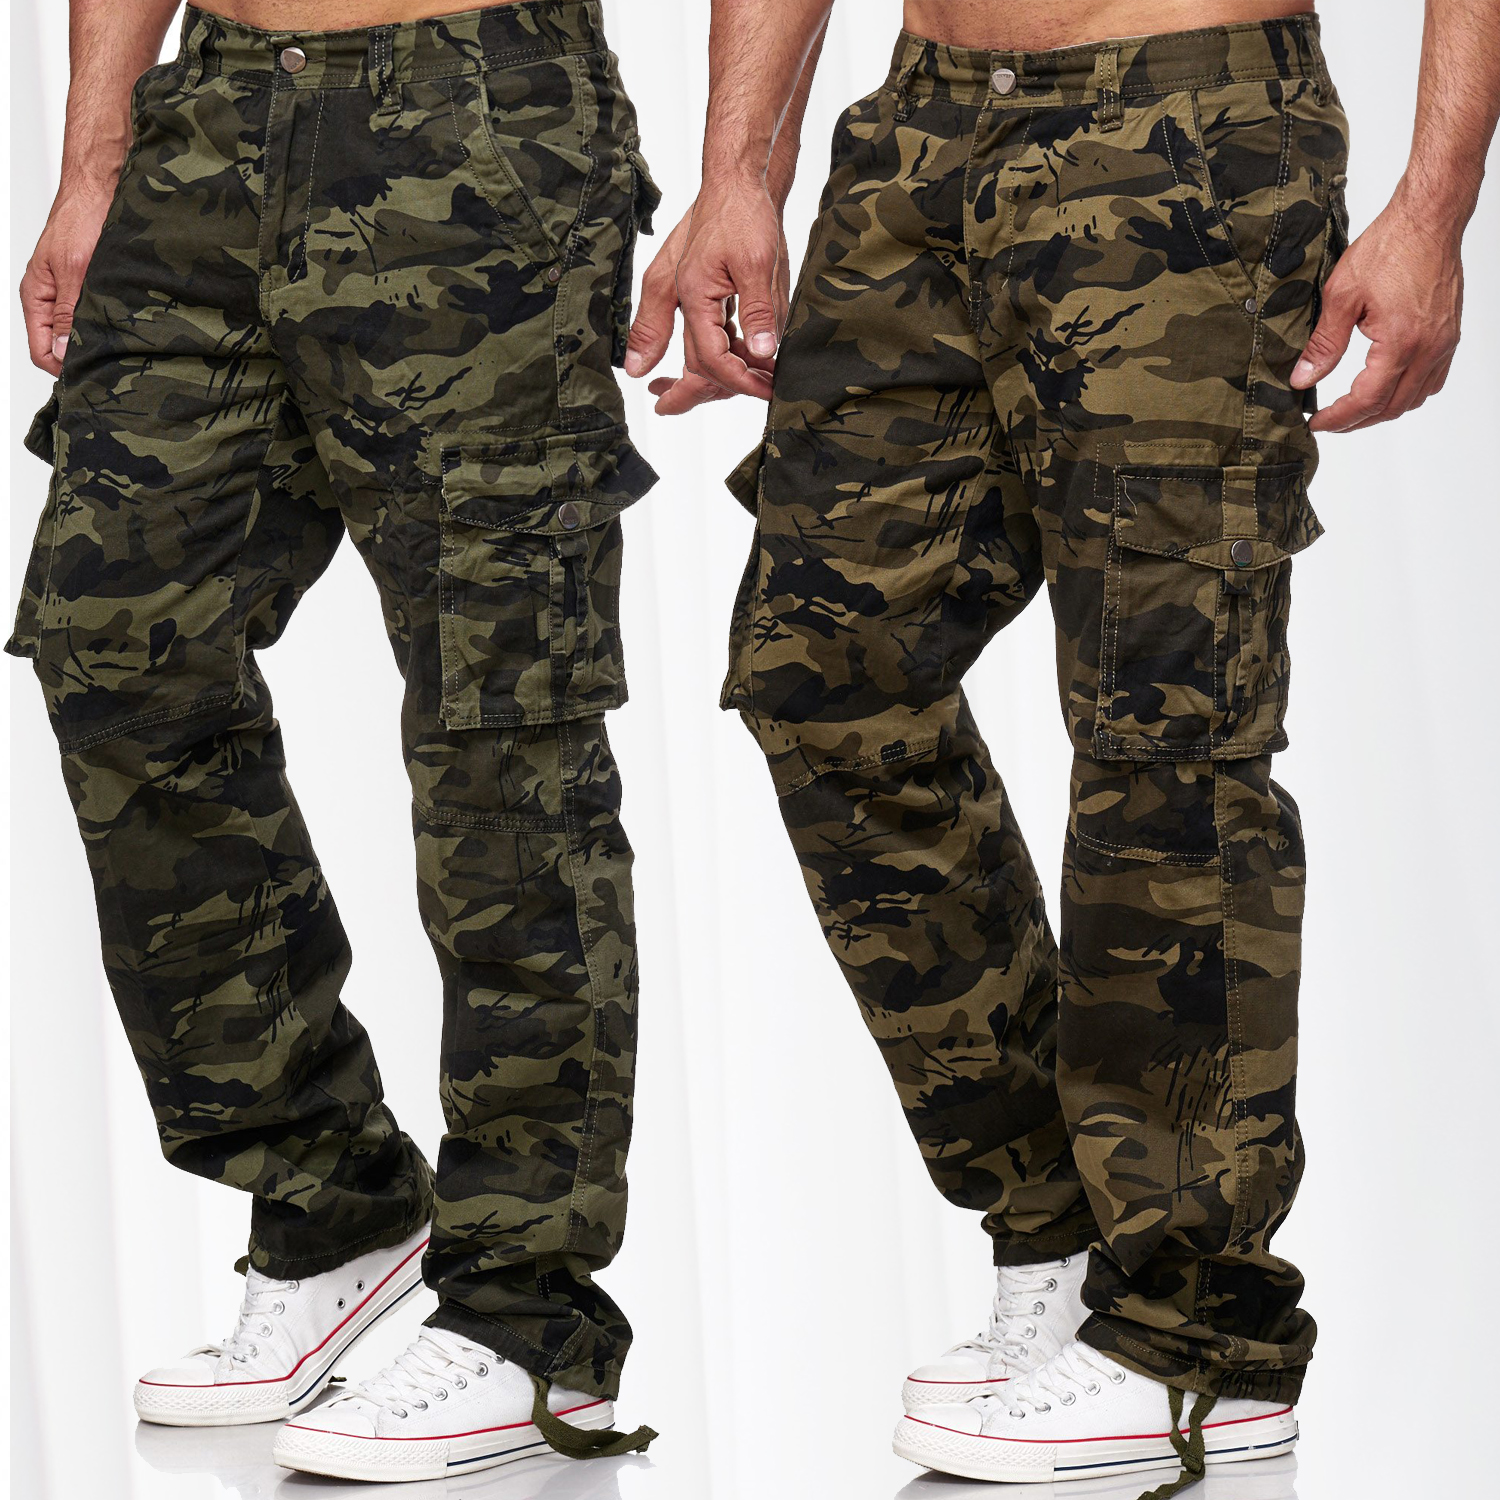 herren camouflage cargo hose tarnmuster cargohose milit r freizeithose army neu ebay. Black Bedroom Furniture Sets. Home Design Ideas